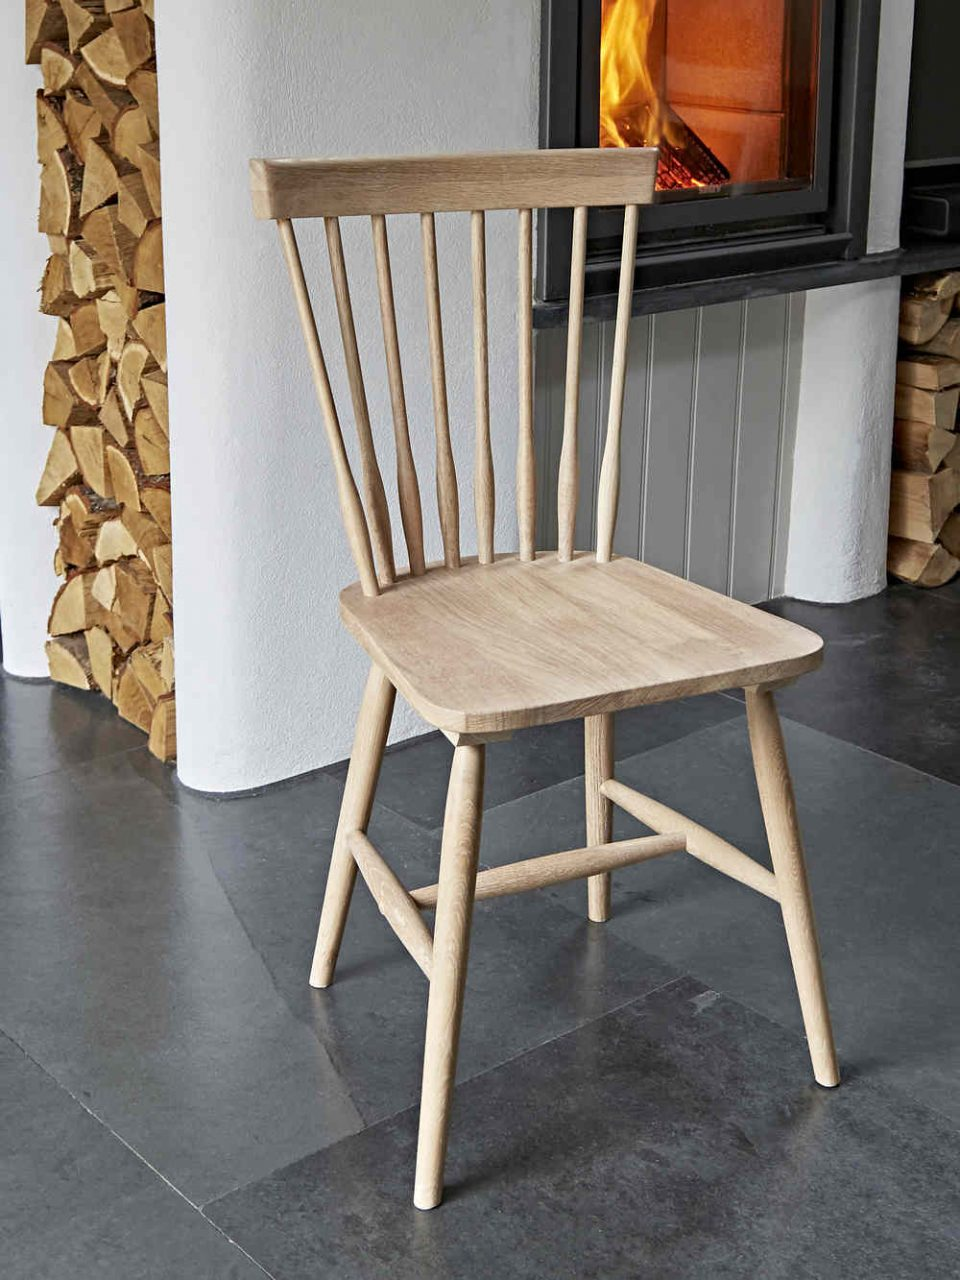 Oak Dining Chair Wooden Dining Chair Scandi Chair